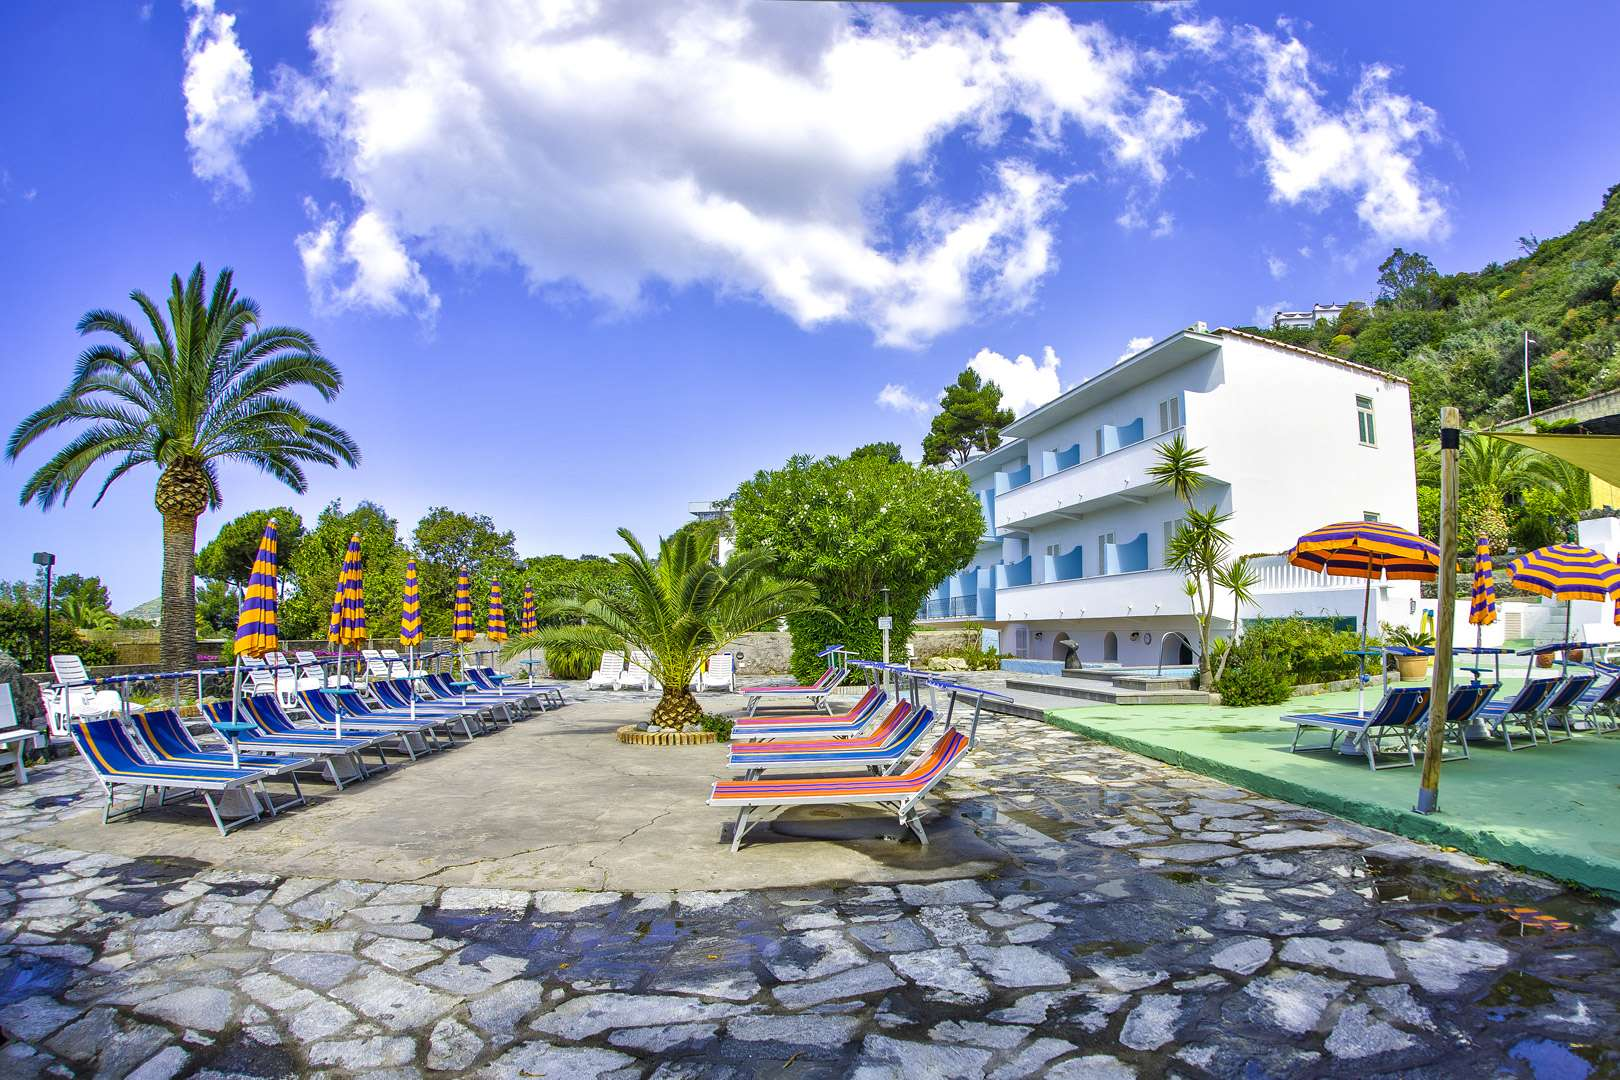 Hotel-Ischia-La-Mandorla-Struttura-01-1620x1080